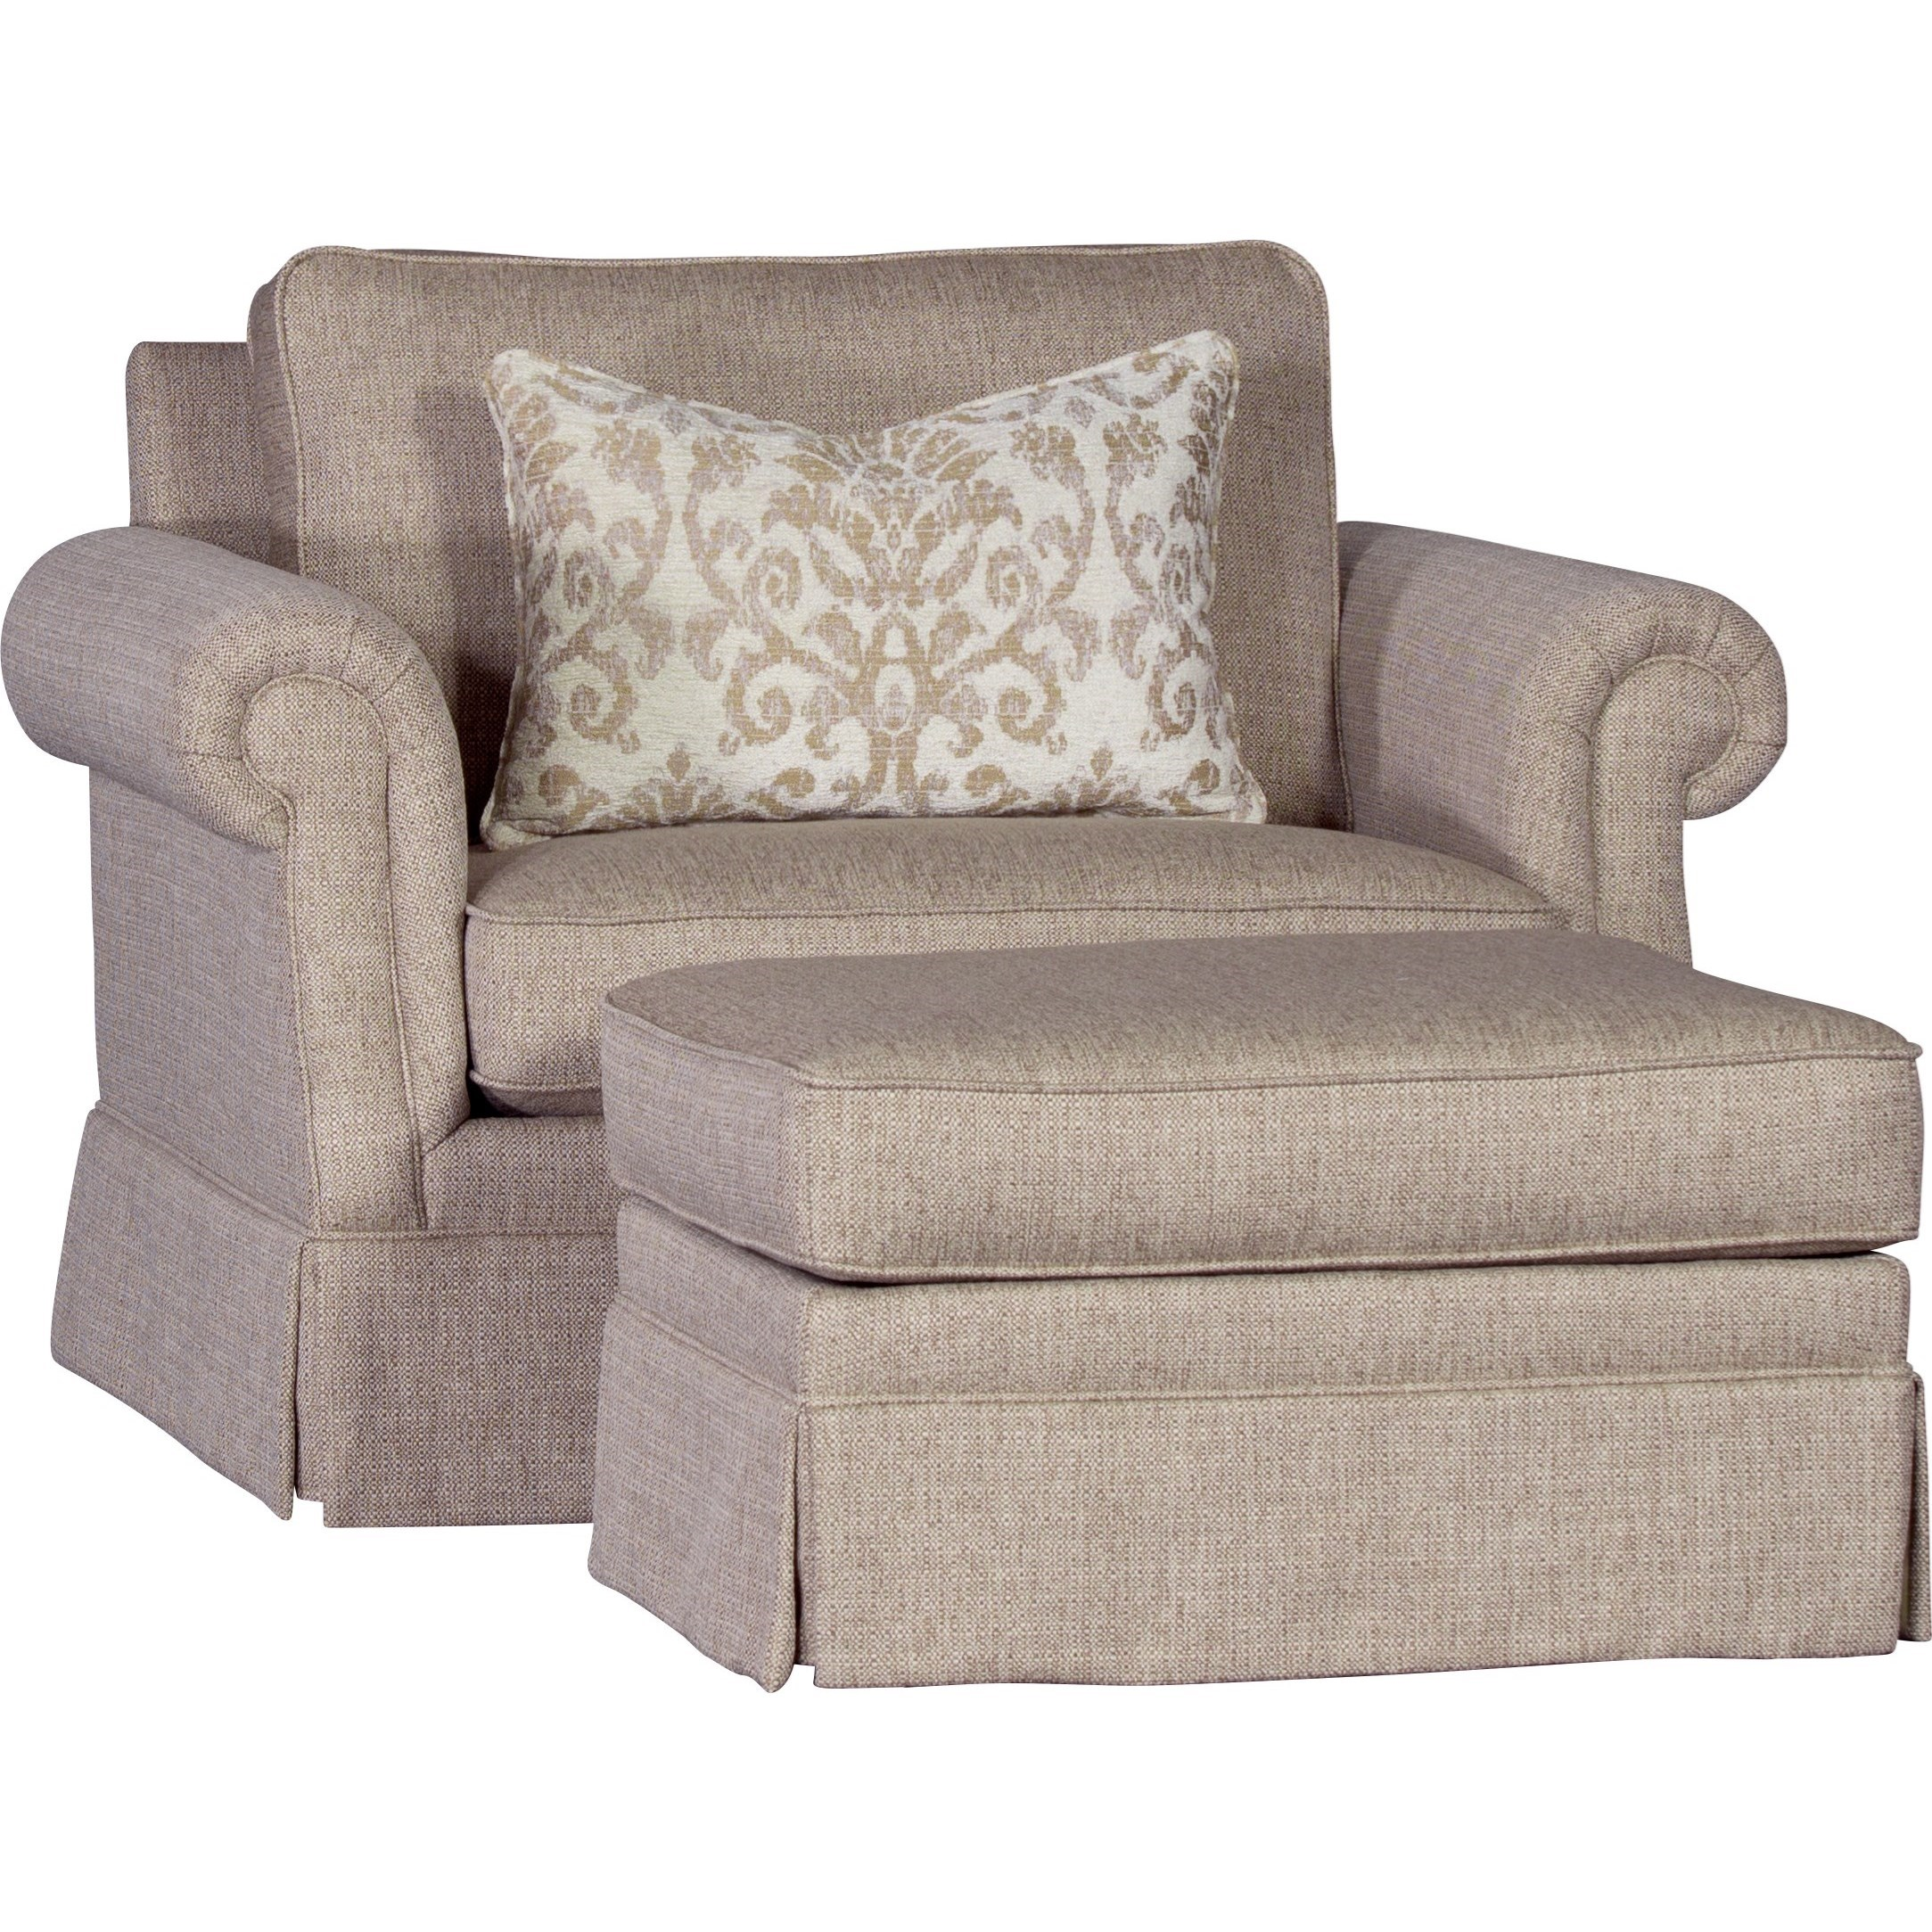 2600 Chair and Ottoman by Mayo at Wilson's Furniture